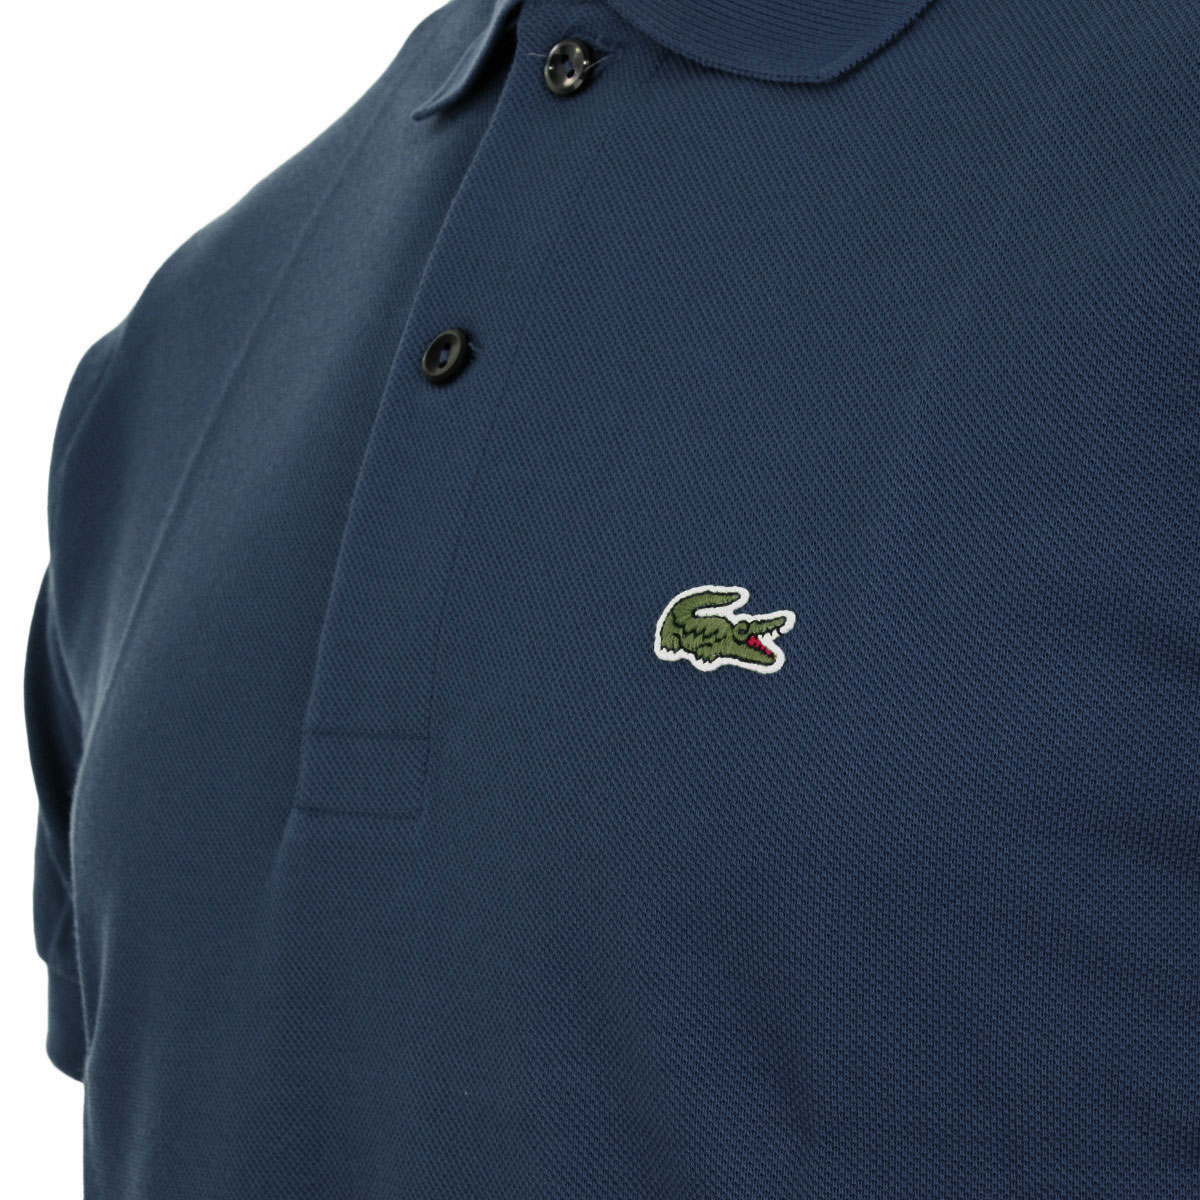 Lacoste-Mens-Classic-Cotton-L1212-Short-Sleeve-Polo-Shirt-31-OFF-RRP thumbnail 45